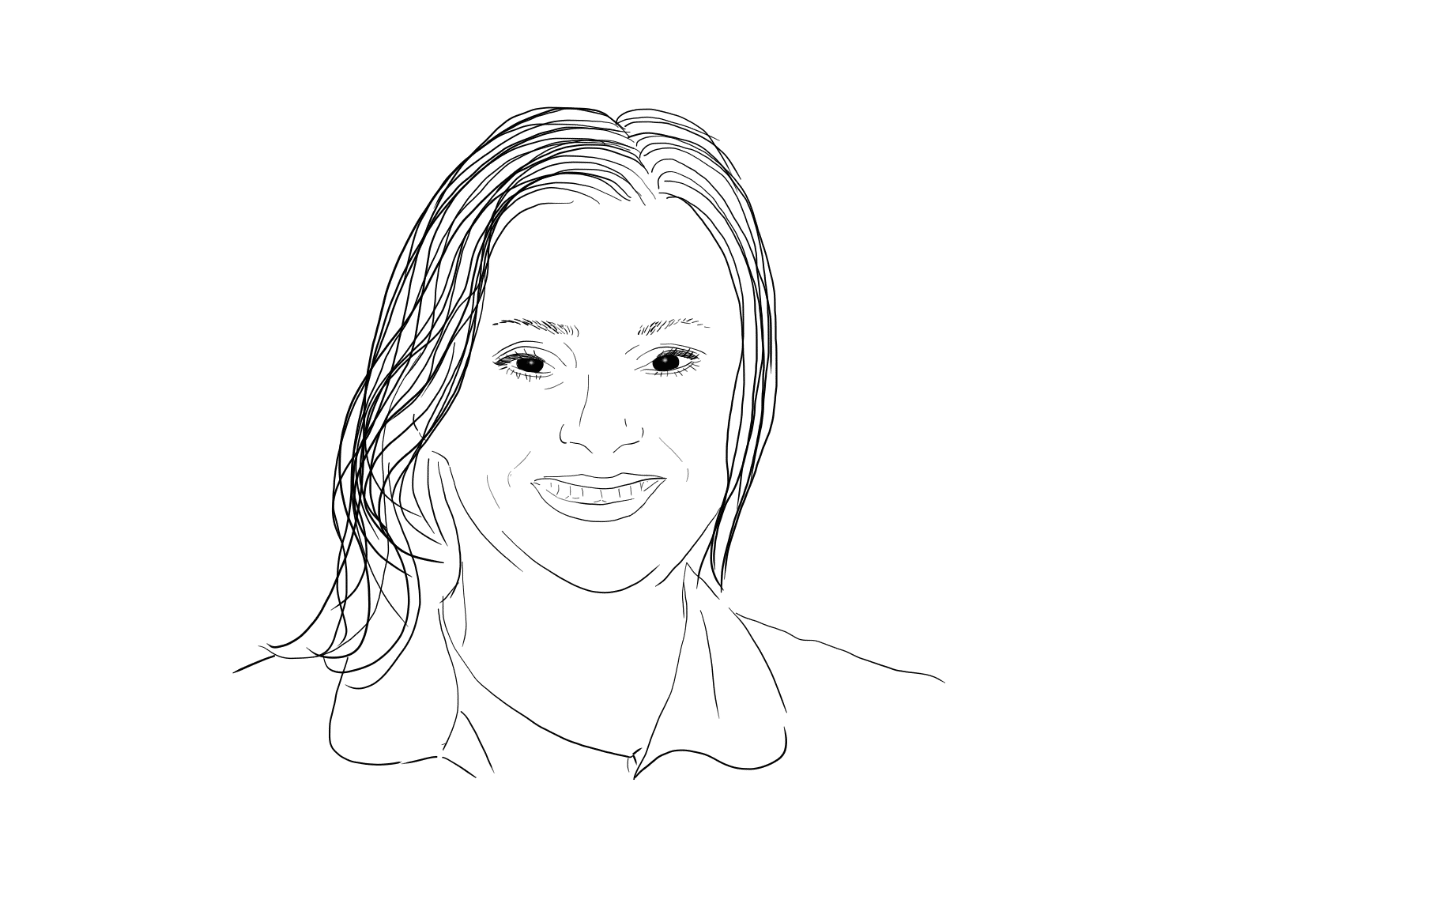 Sketch of Vicky Smith, Founder of Earth Changers